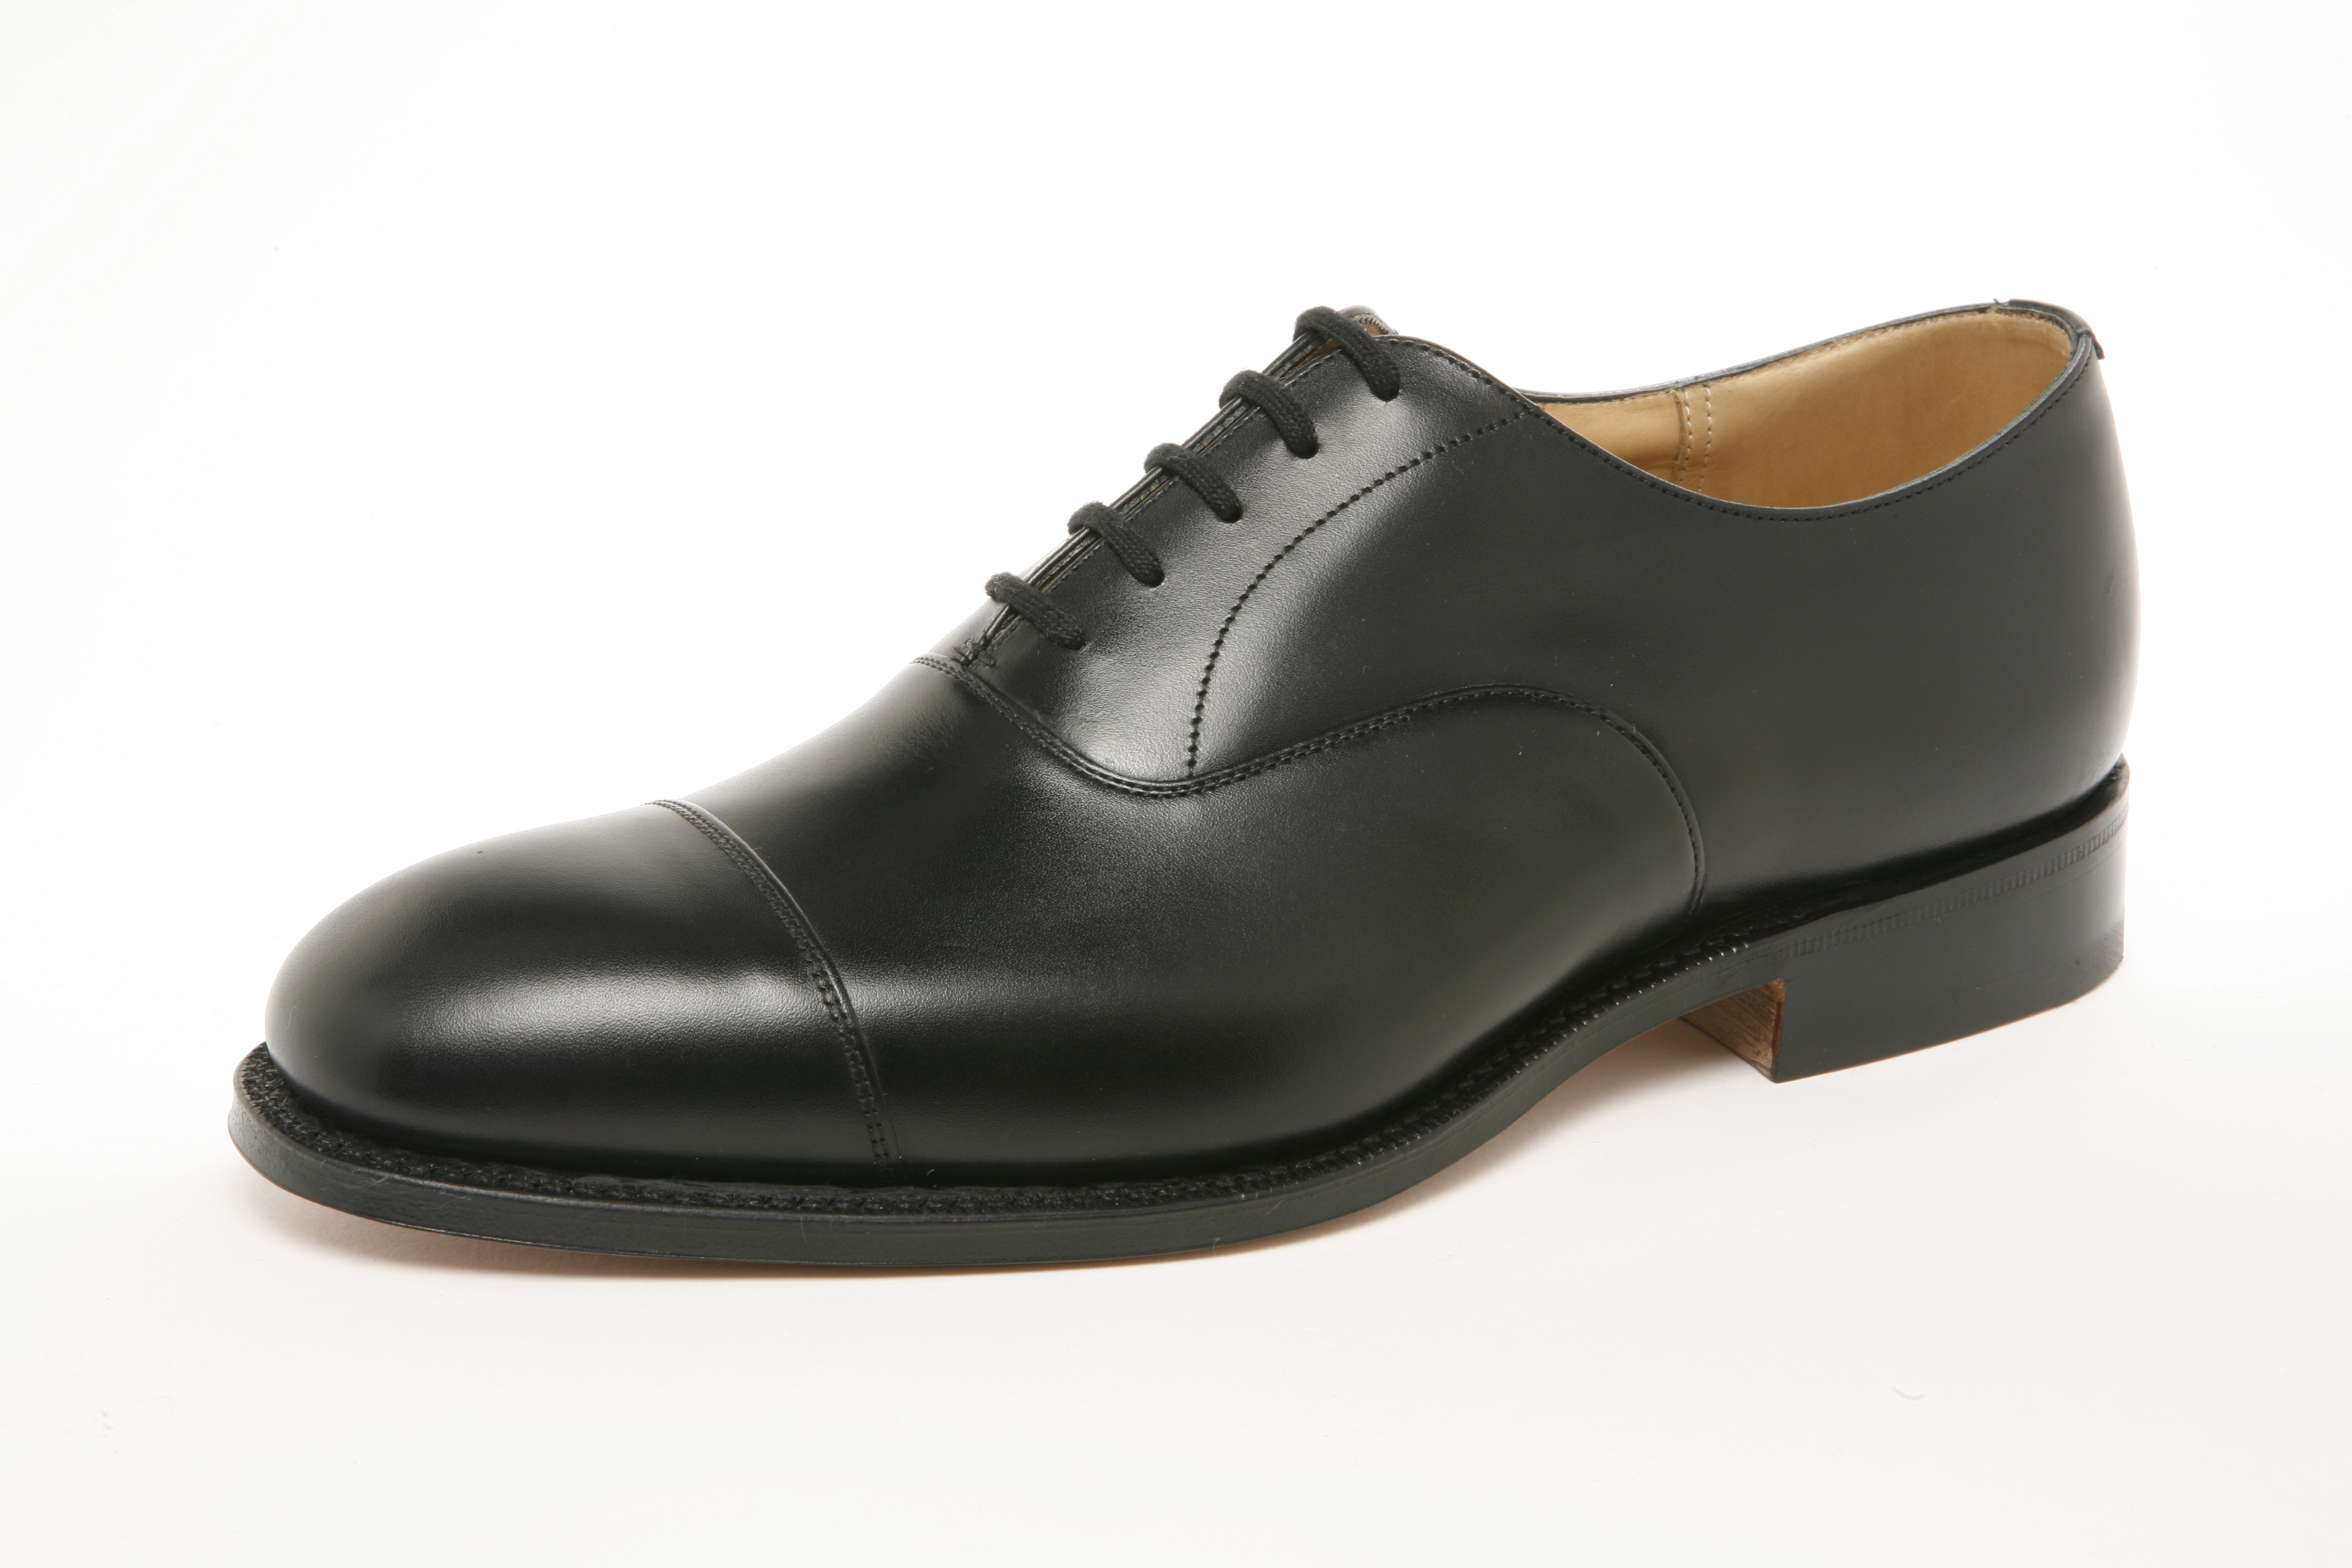 i wear suits for work but don t own a black shoe